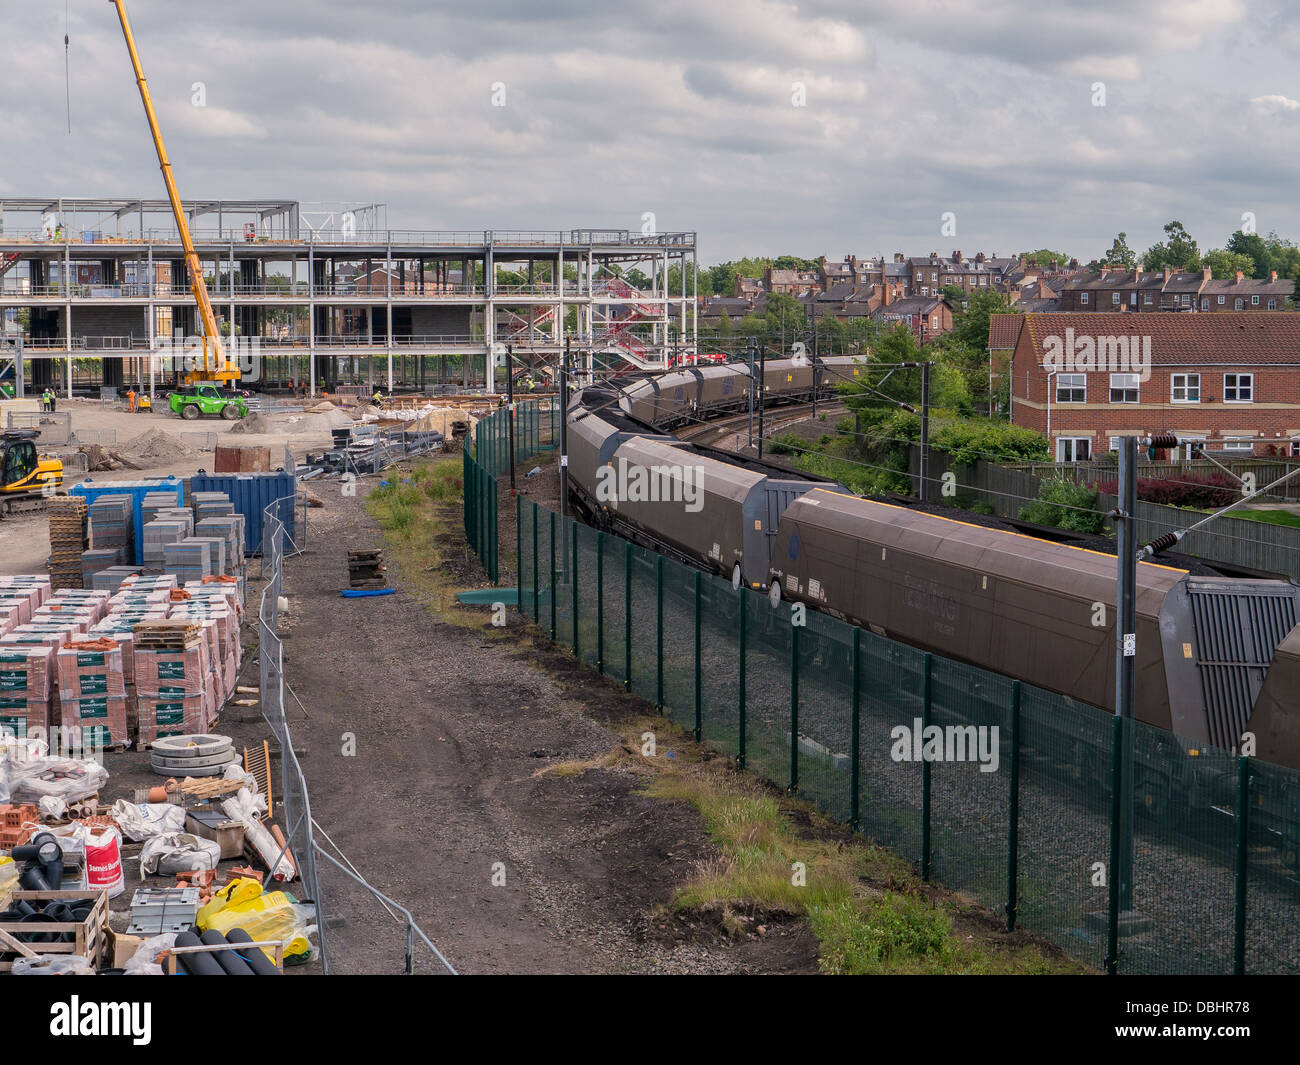 A freight train carrying coal moves slowly between a commercial building site and a residential area in York, UK. - Stock Image